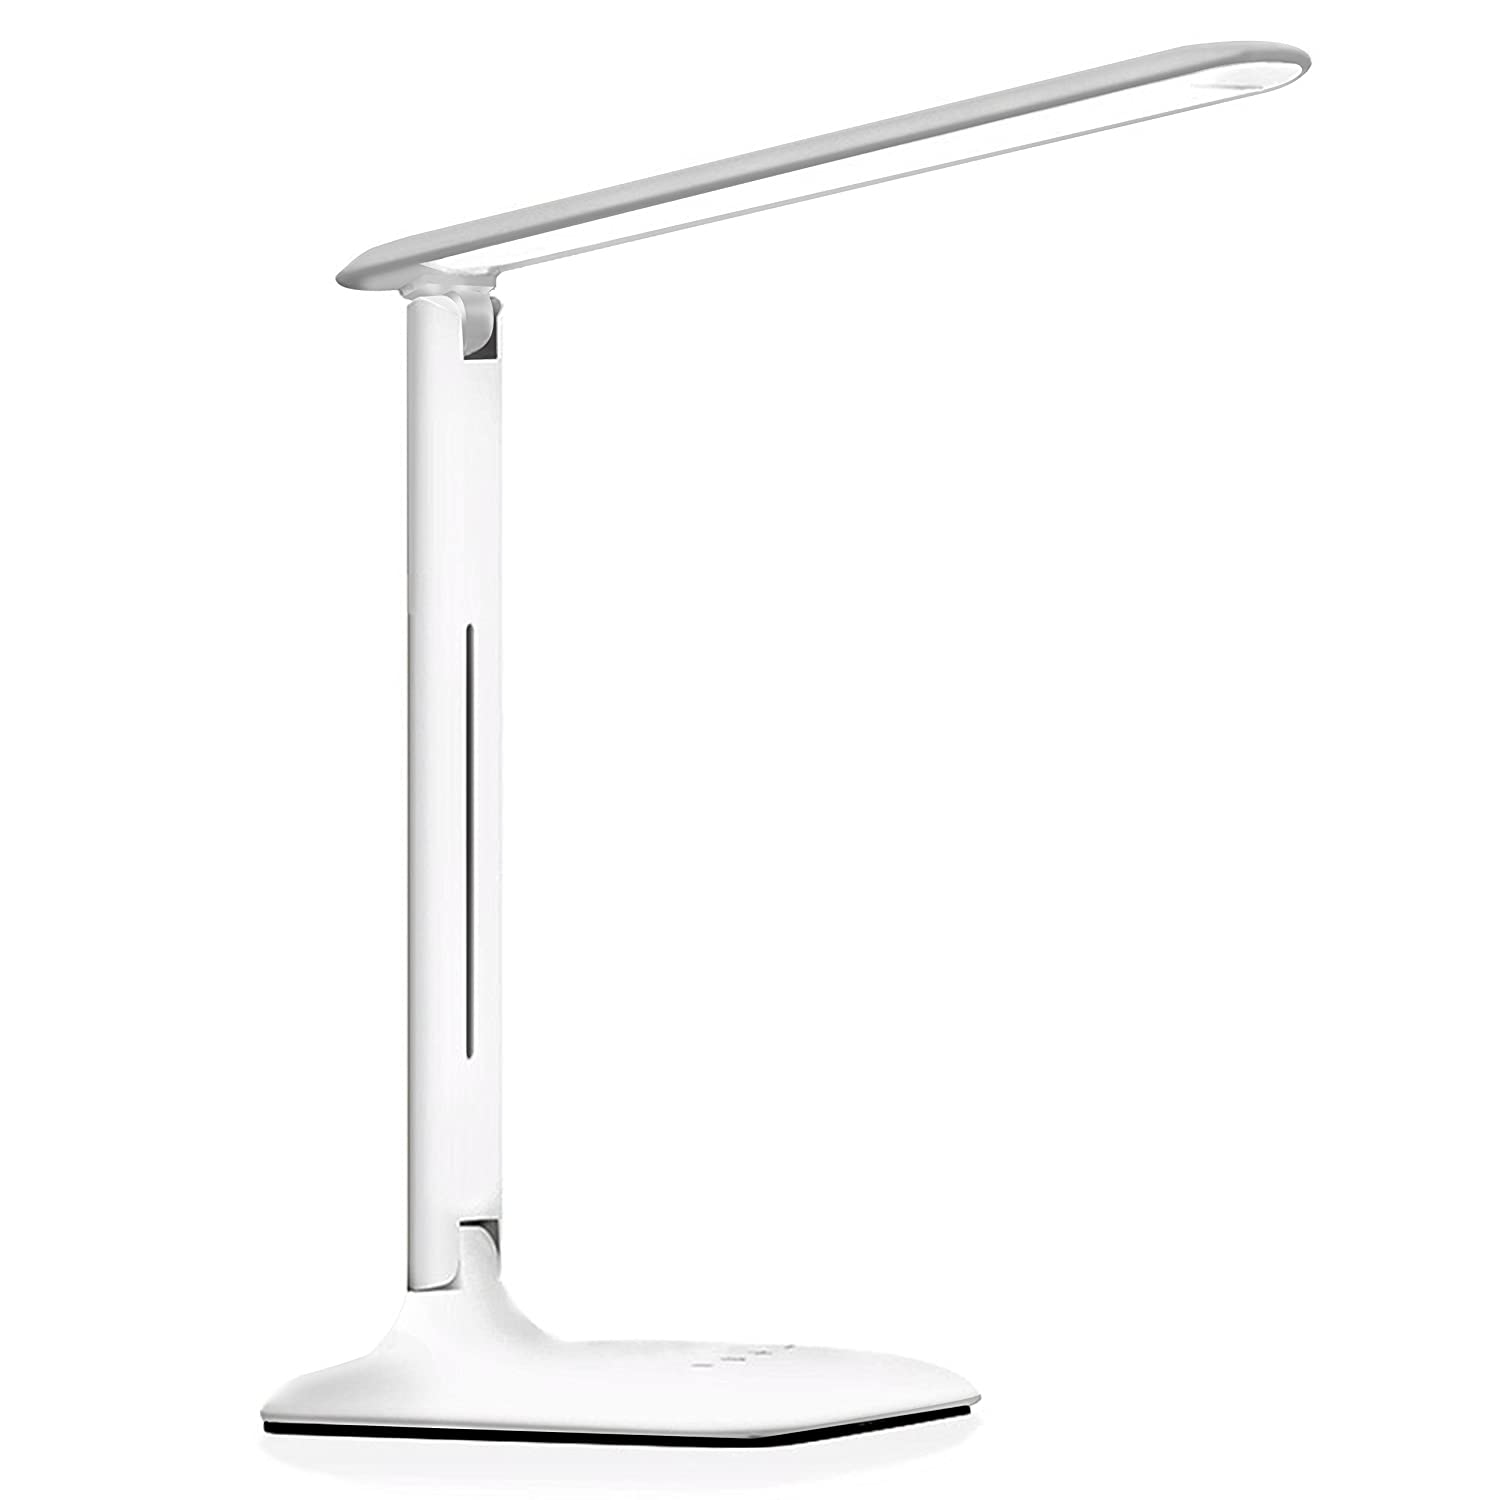 Dohomai LED Desk Lamp, Foldable Touch Dimmable Table Lamp, 3 Lighting Mode and 5 Brightness Levels, with 14 LED and Anti-slip mat, Eye Protection, Energy-efficient, for Work, Study, Office, Bedroom, Reading (white) [Energy Class A++]